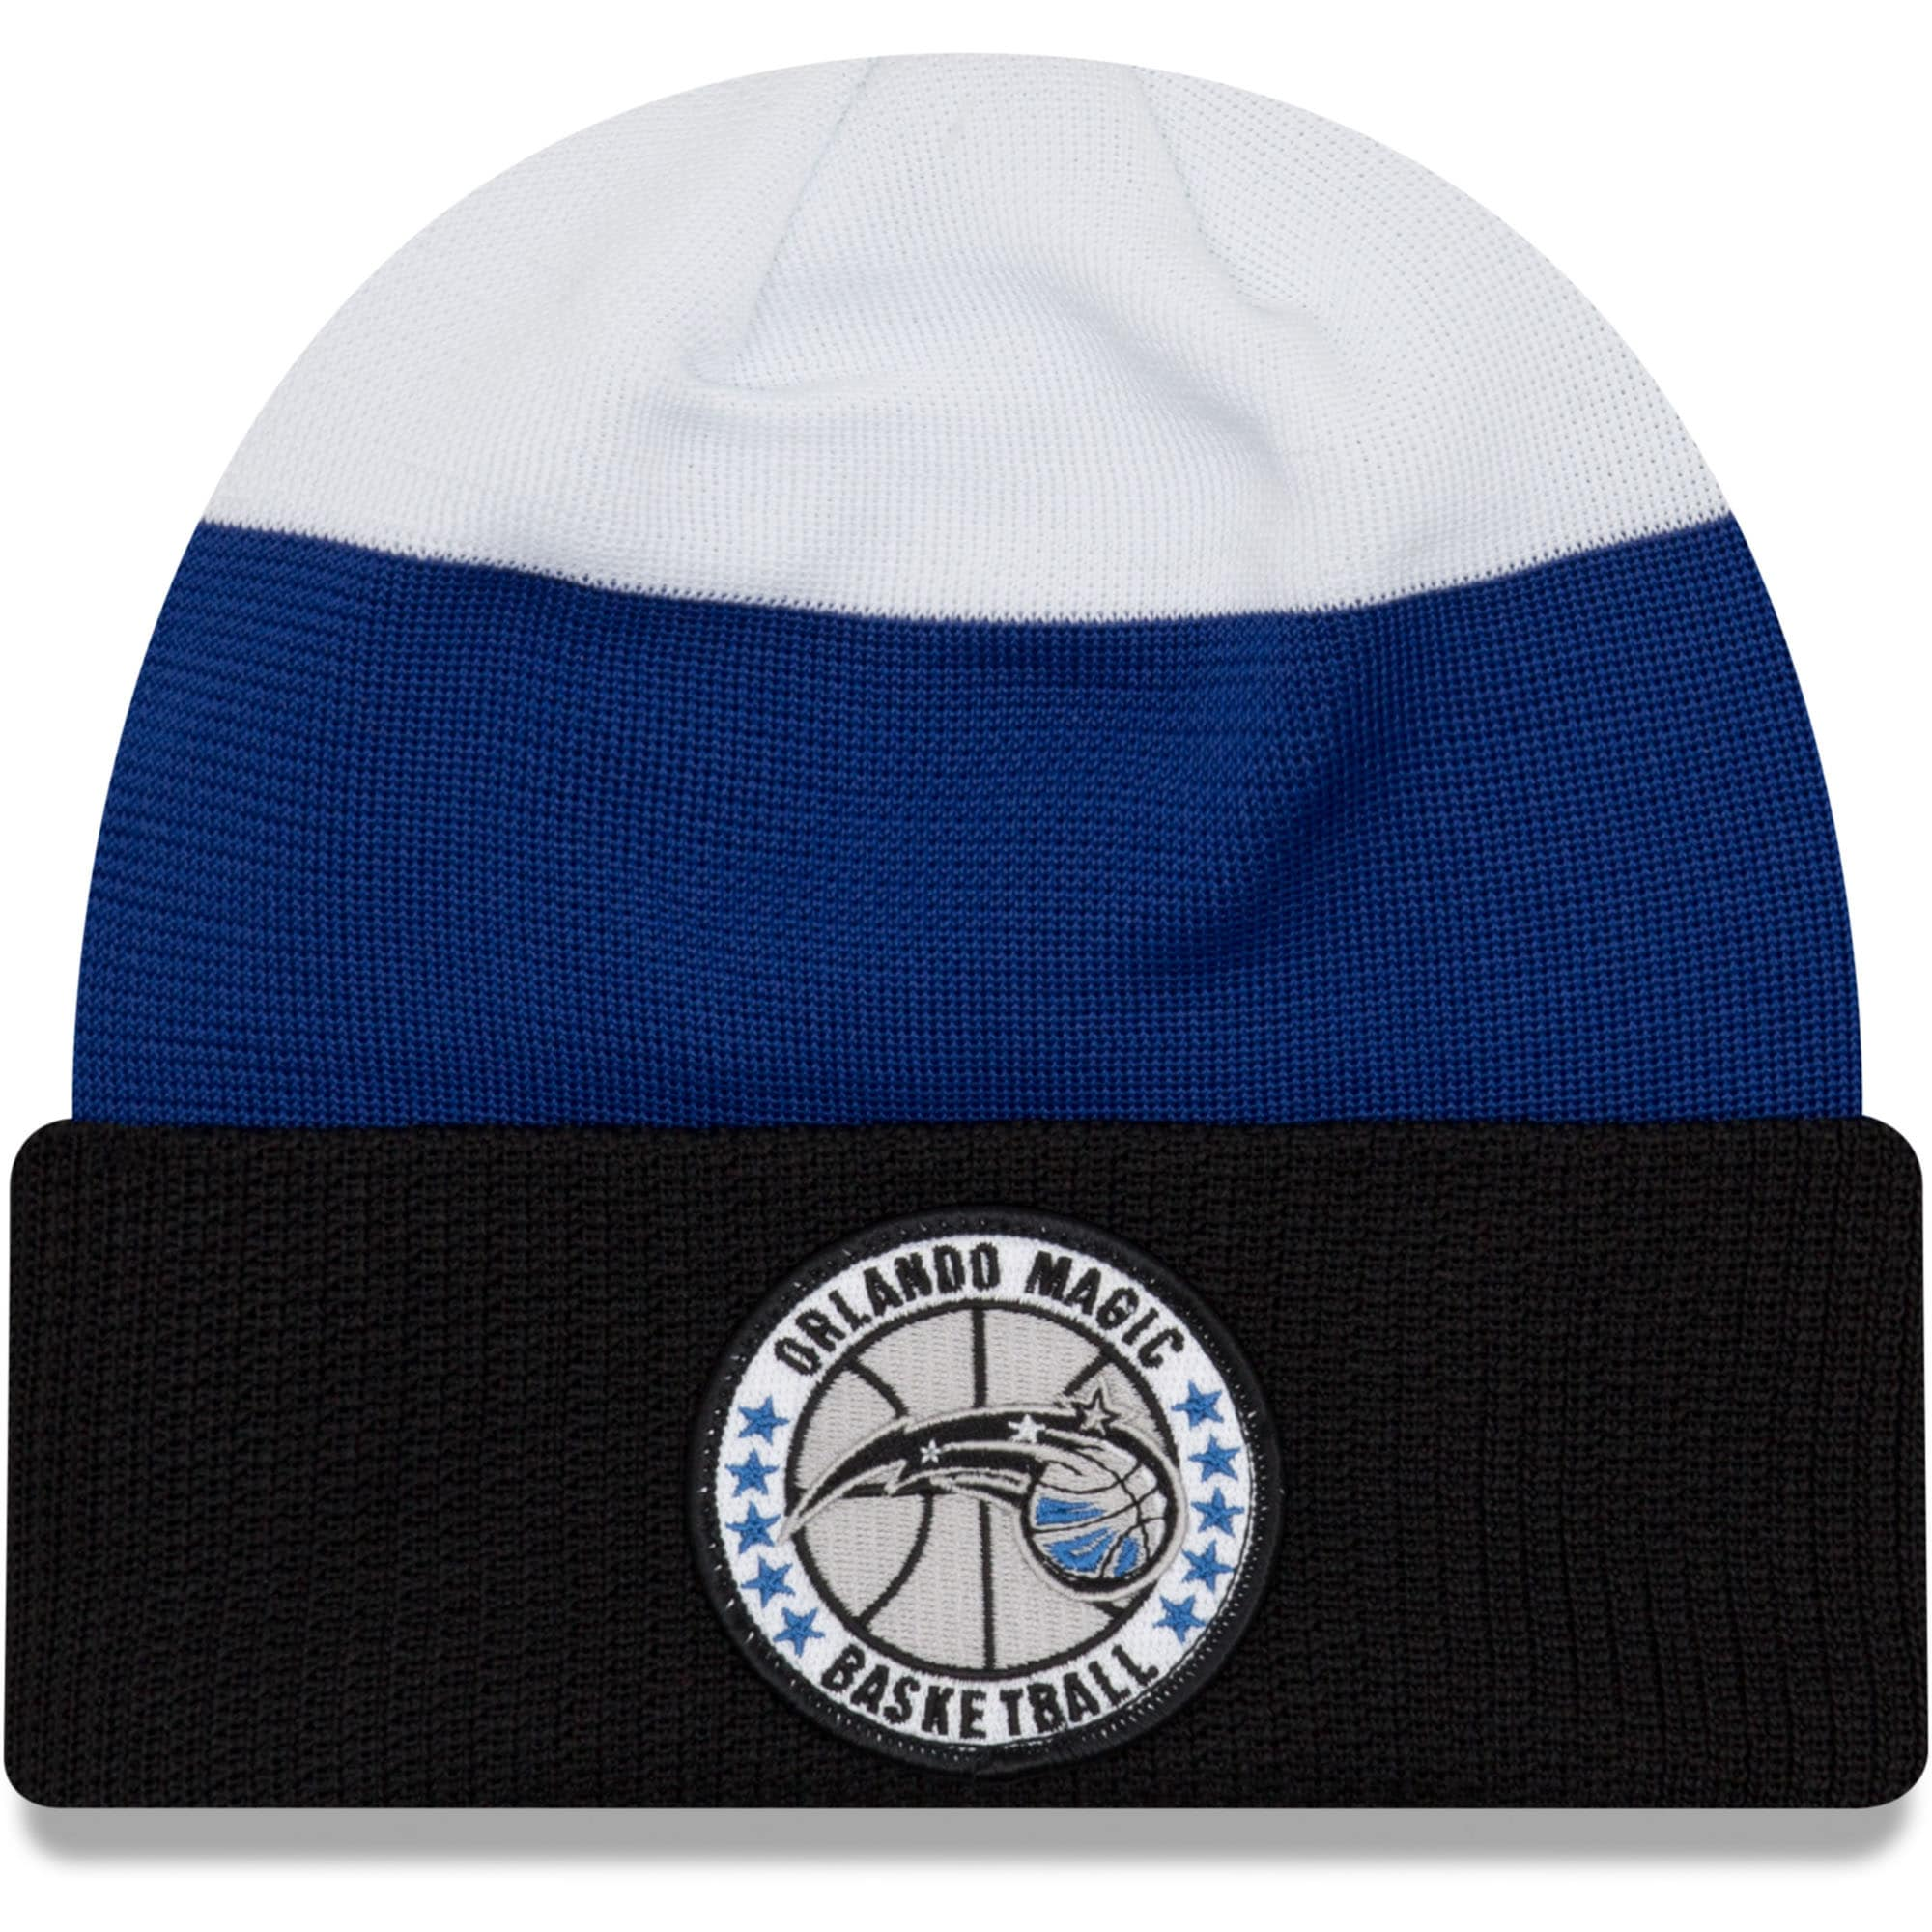 Orlando Magic New Era 2018 Tip Off Series Cuffed Knit Hat - Blue